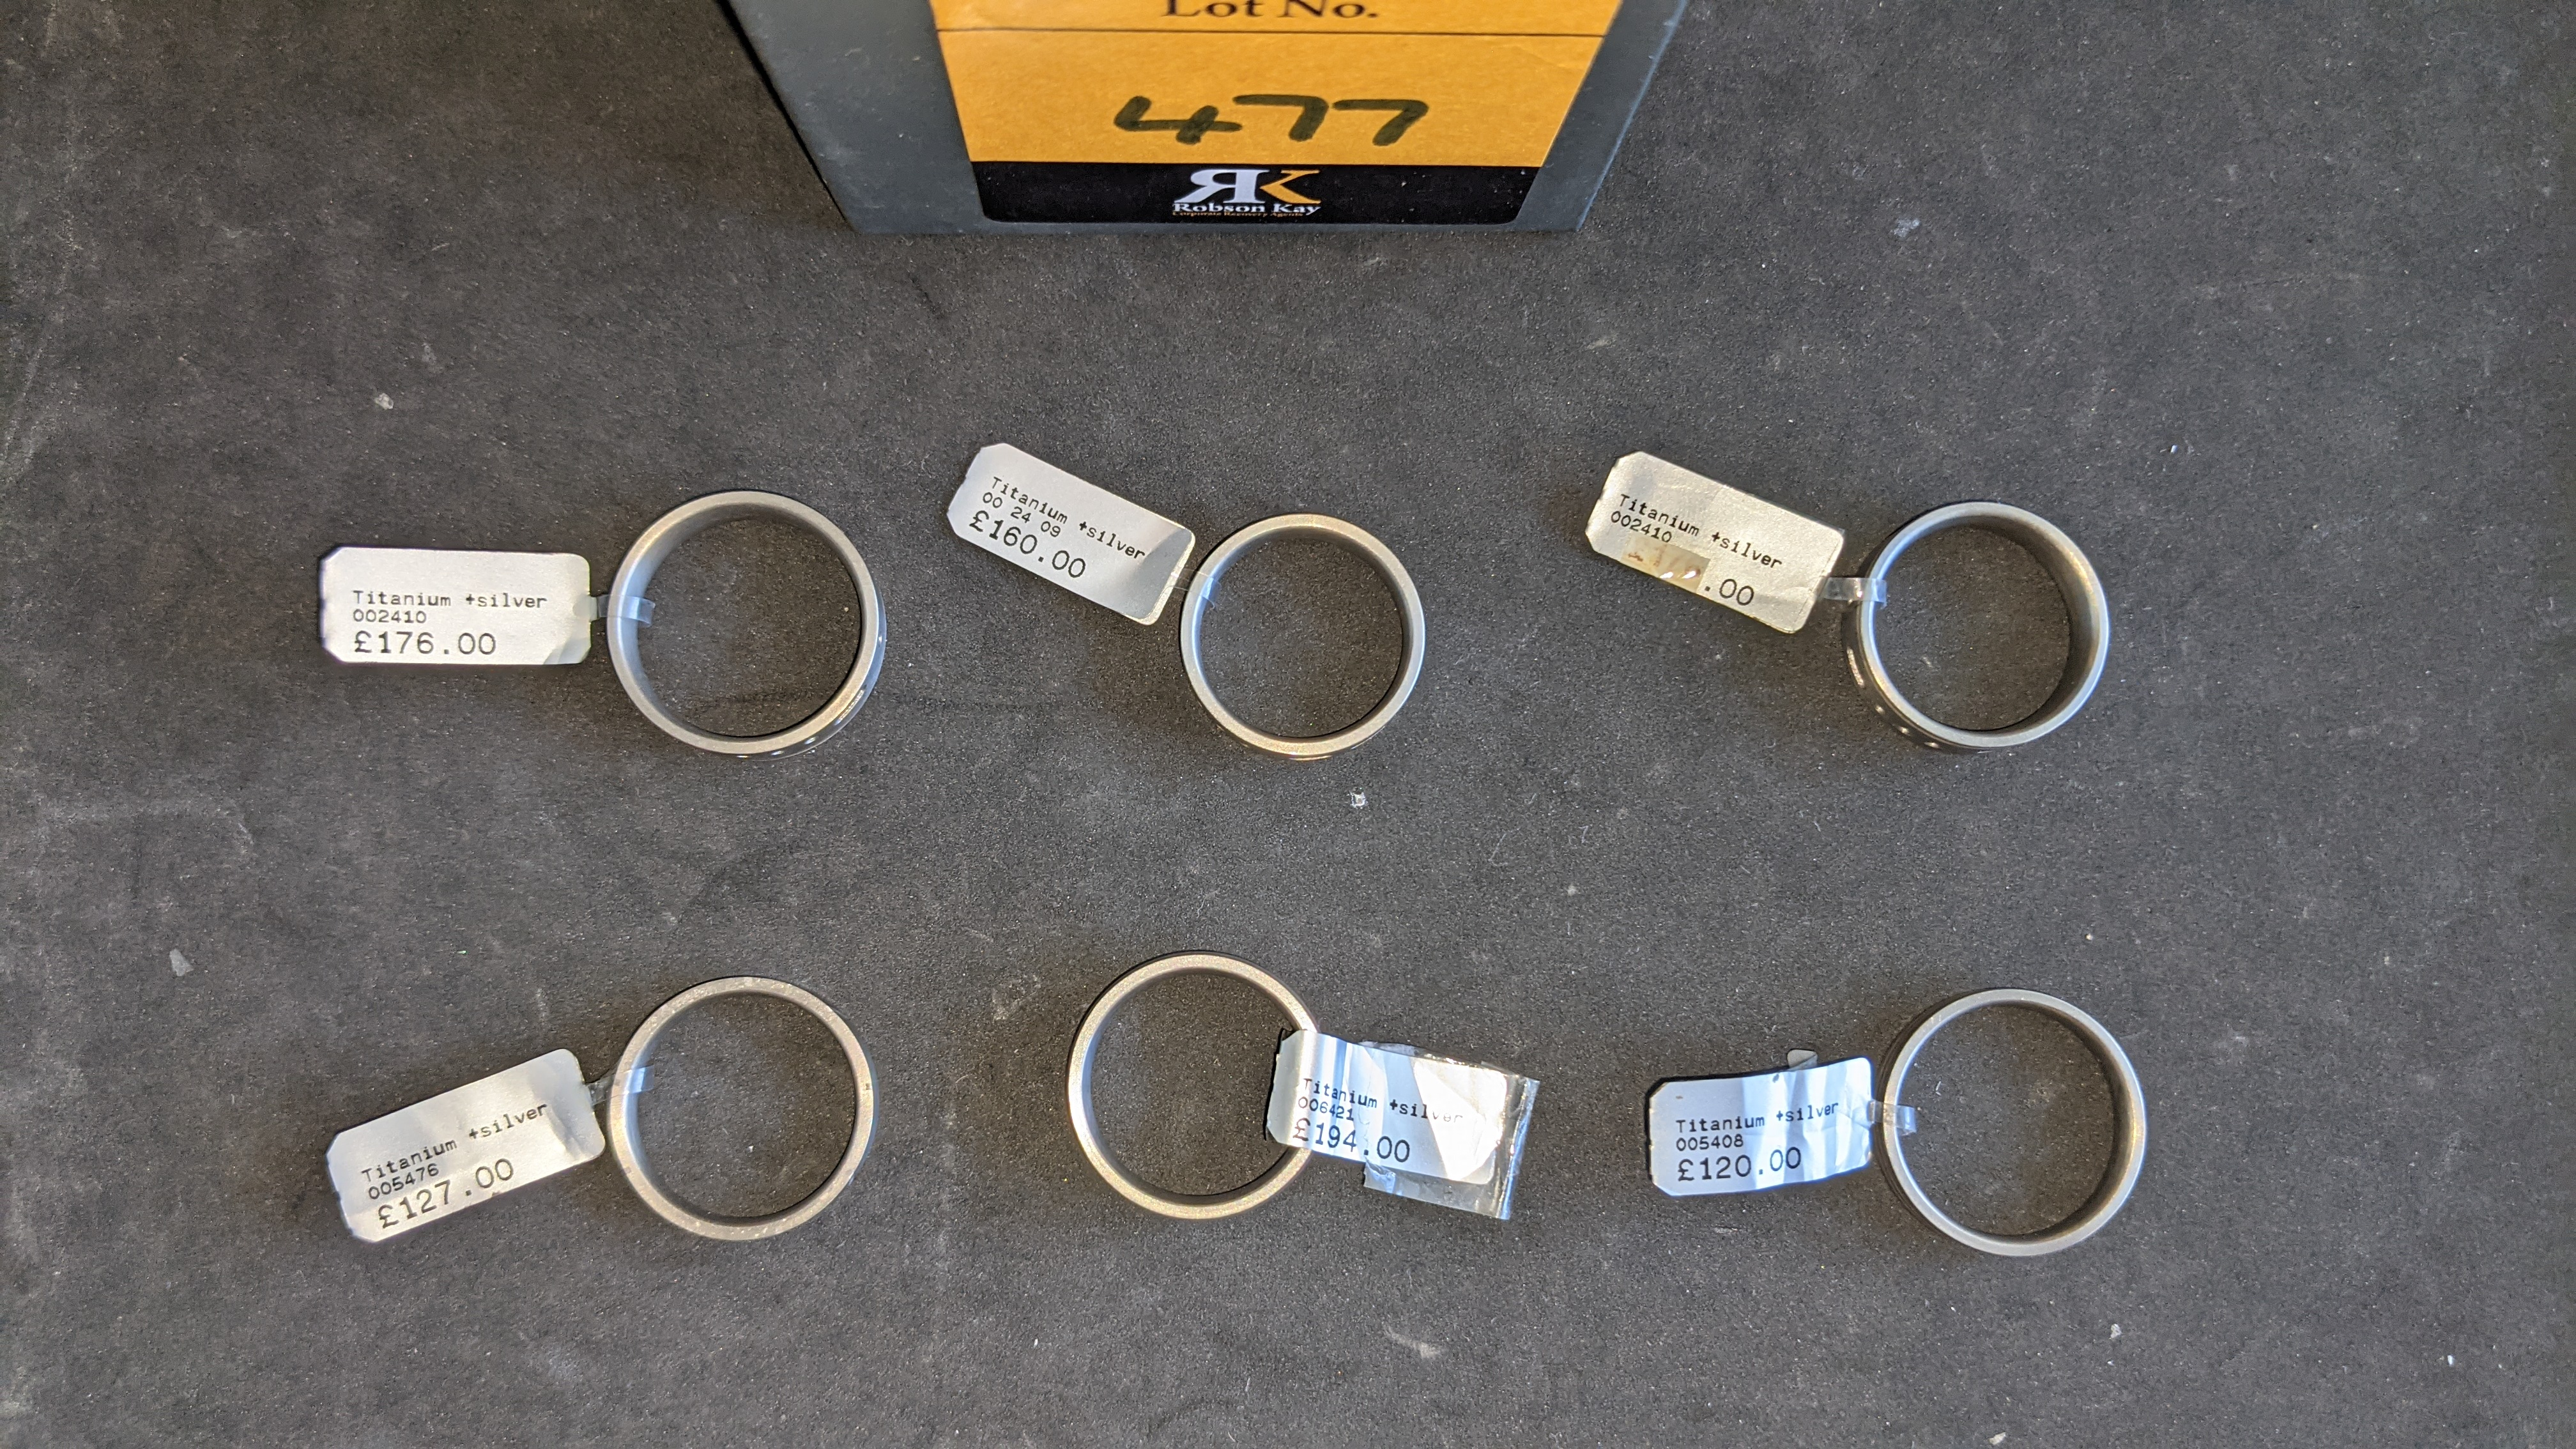 6 off assorted titanium & silver ring with RRPs from £120 - £194 per ring. Total RRP is £953 - Image 7 of 10